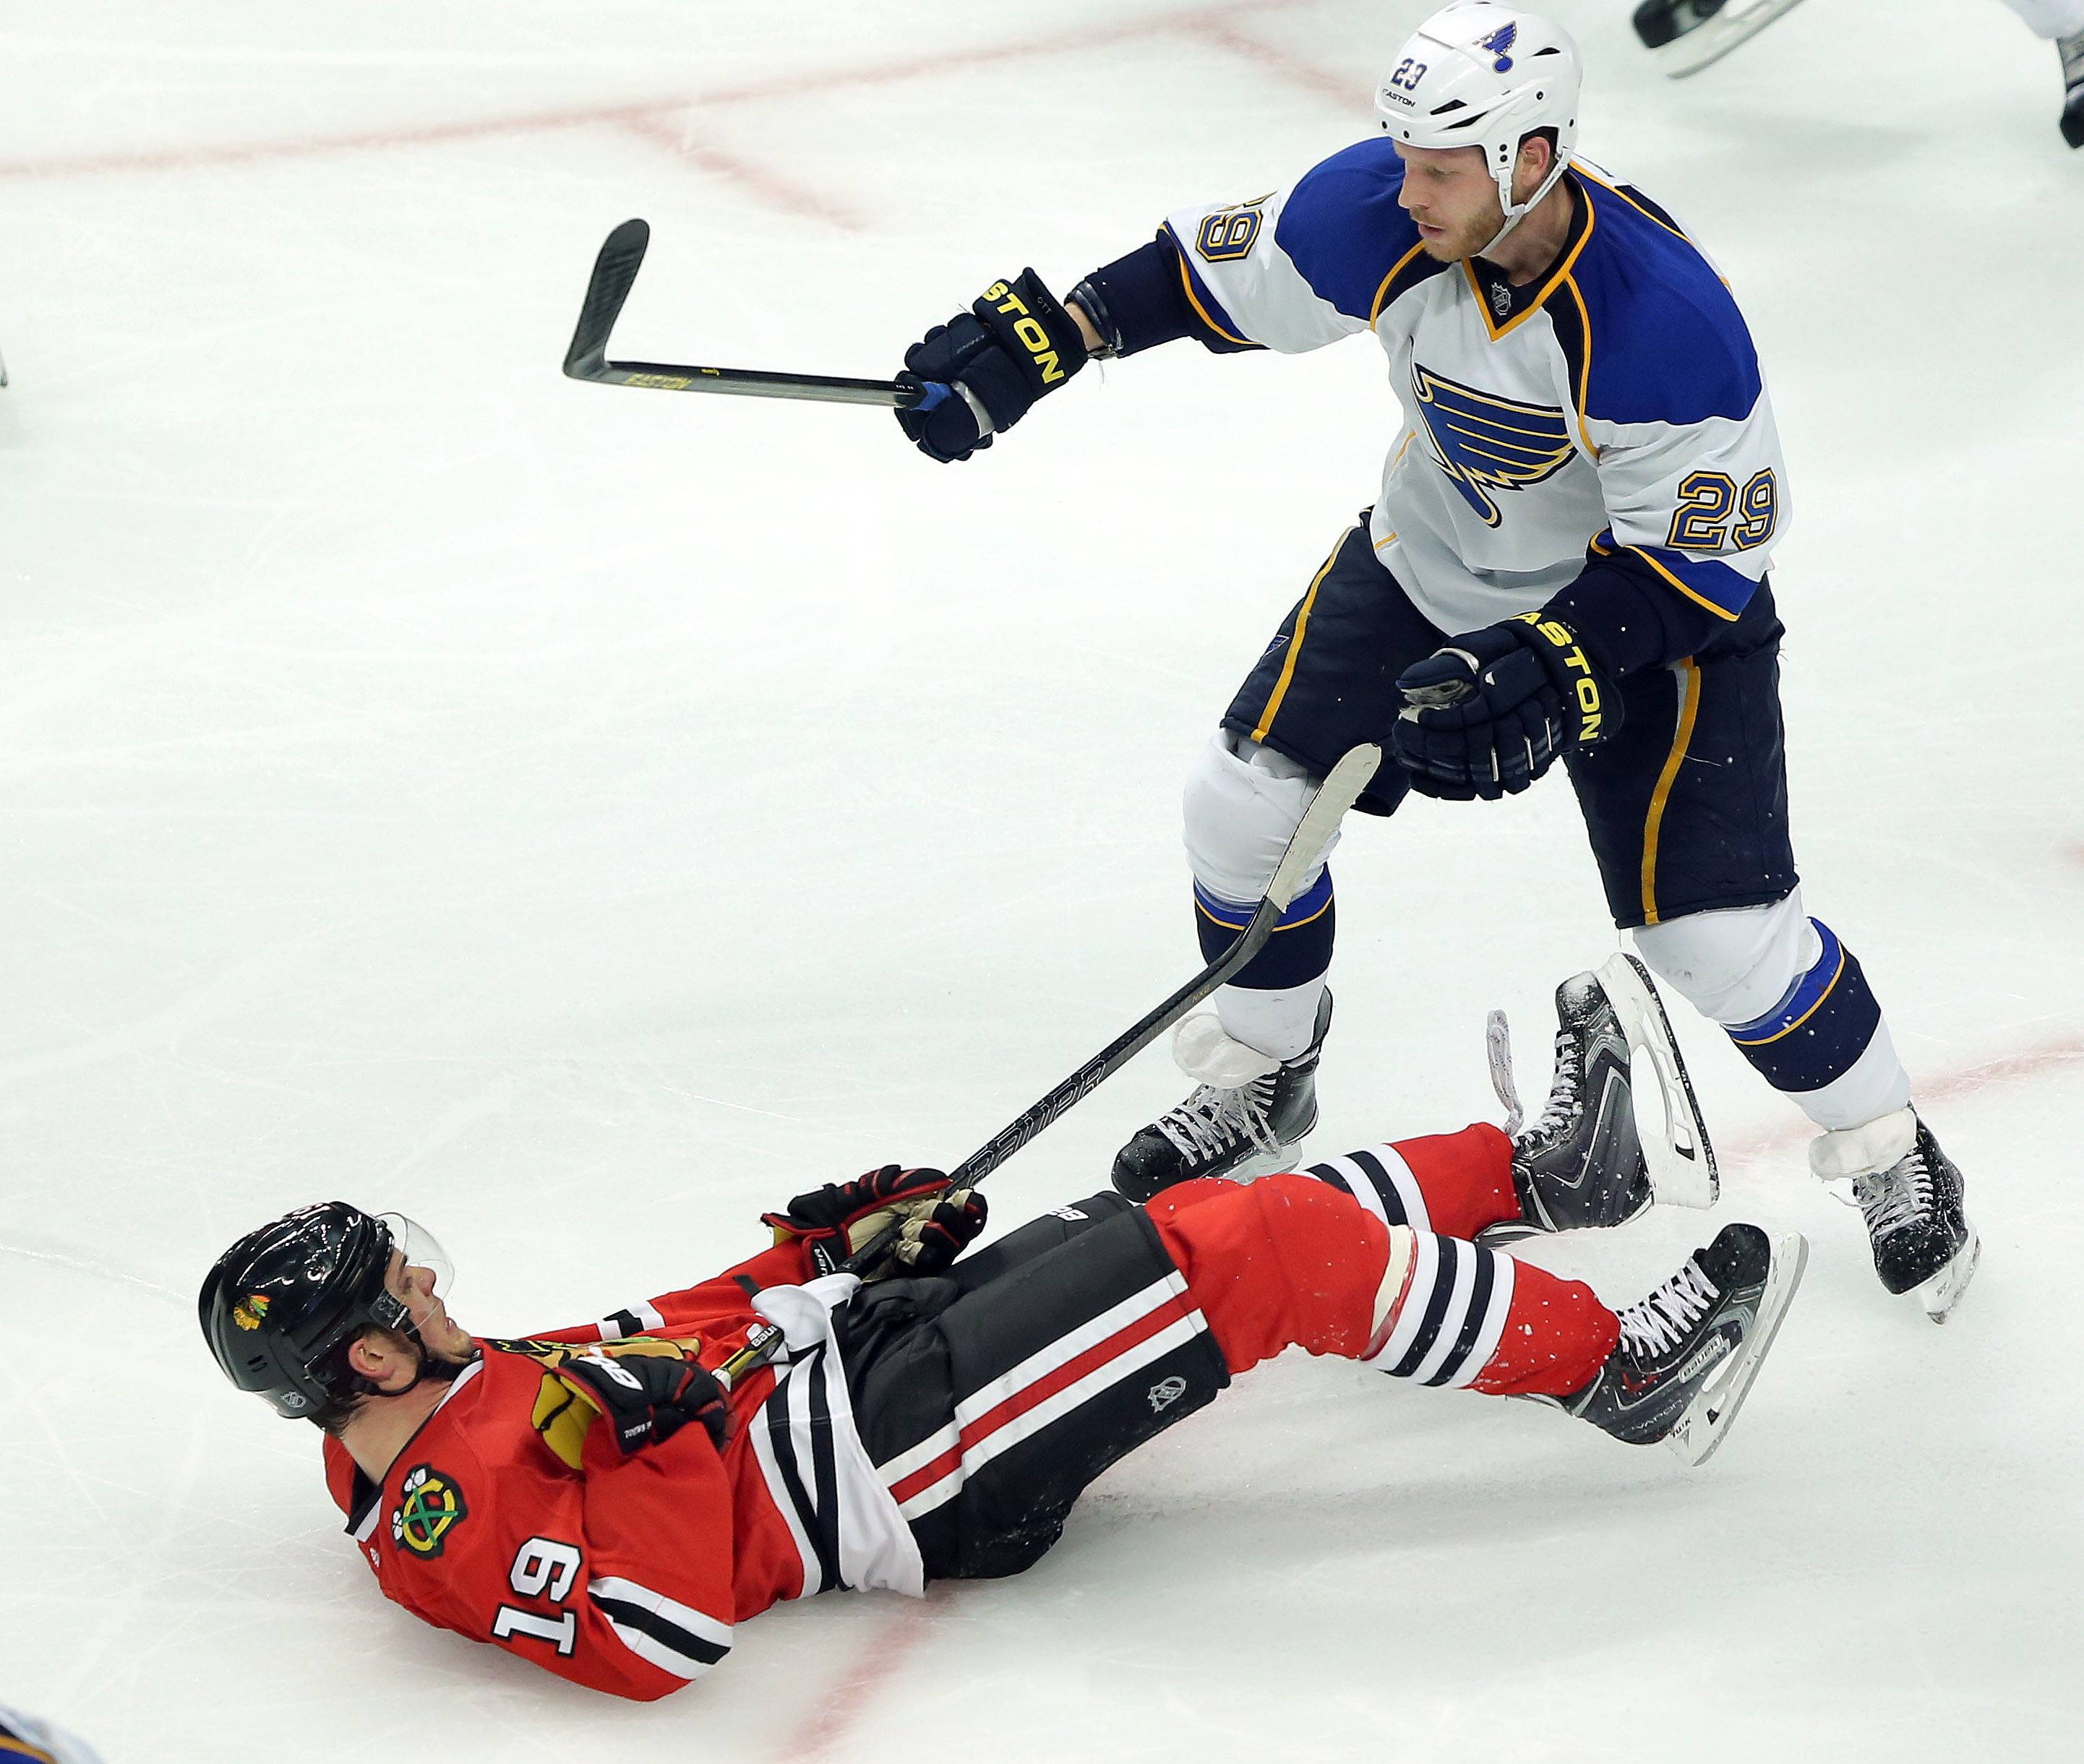 Jonathan Toews is sent sprawling by the Blues' Steve Ott during the Hawks' 2-0 win in Game 3 at the United Center on Monday night.